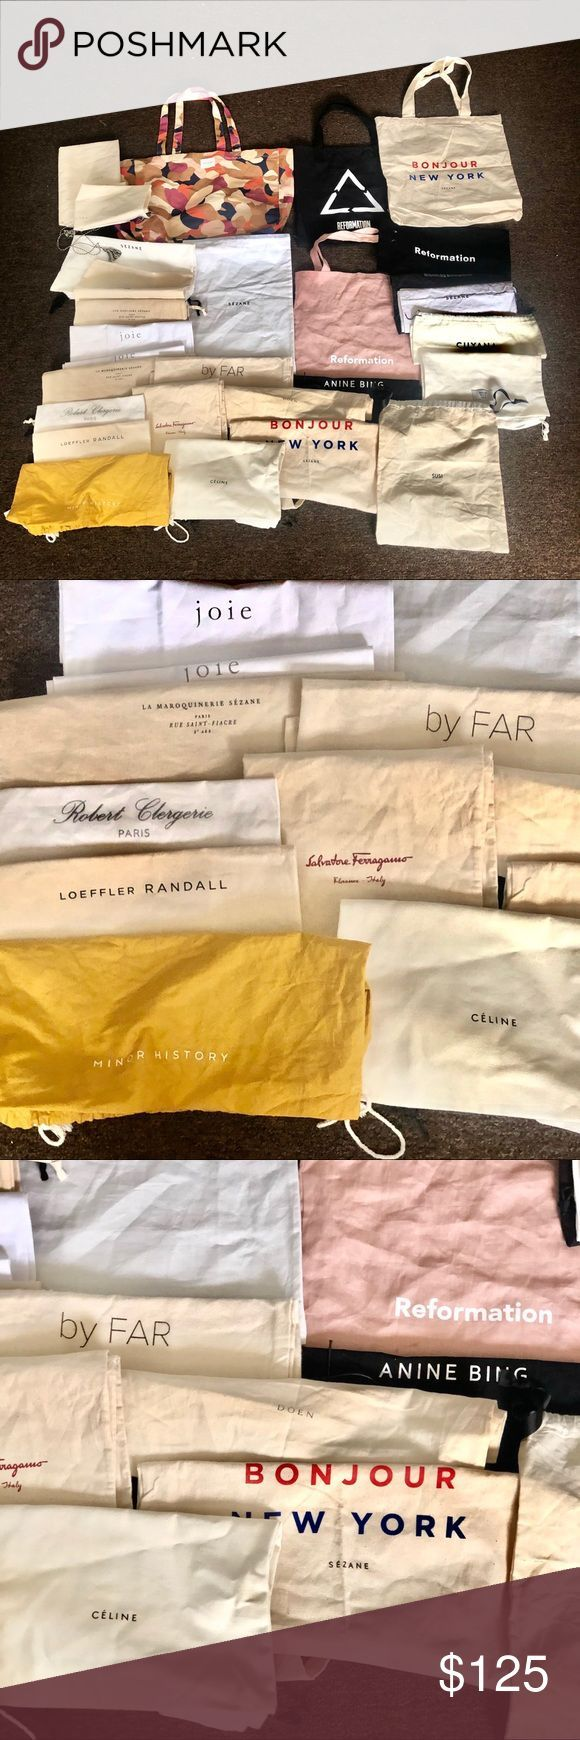 Huge Lot of 28 Tote & Dust Bags Reformation Sezane Huge Lot of Tote & Dust Bags